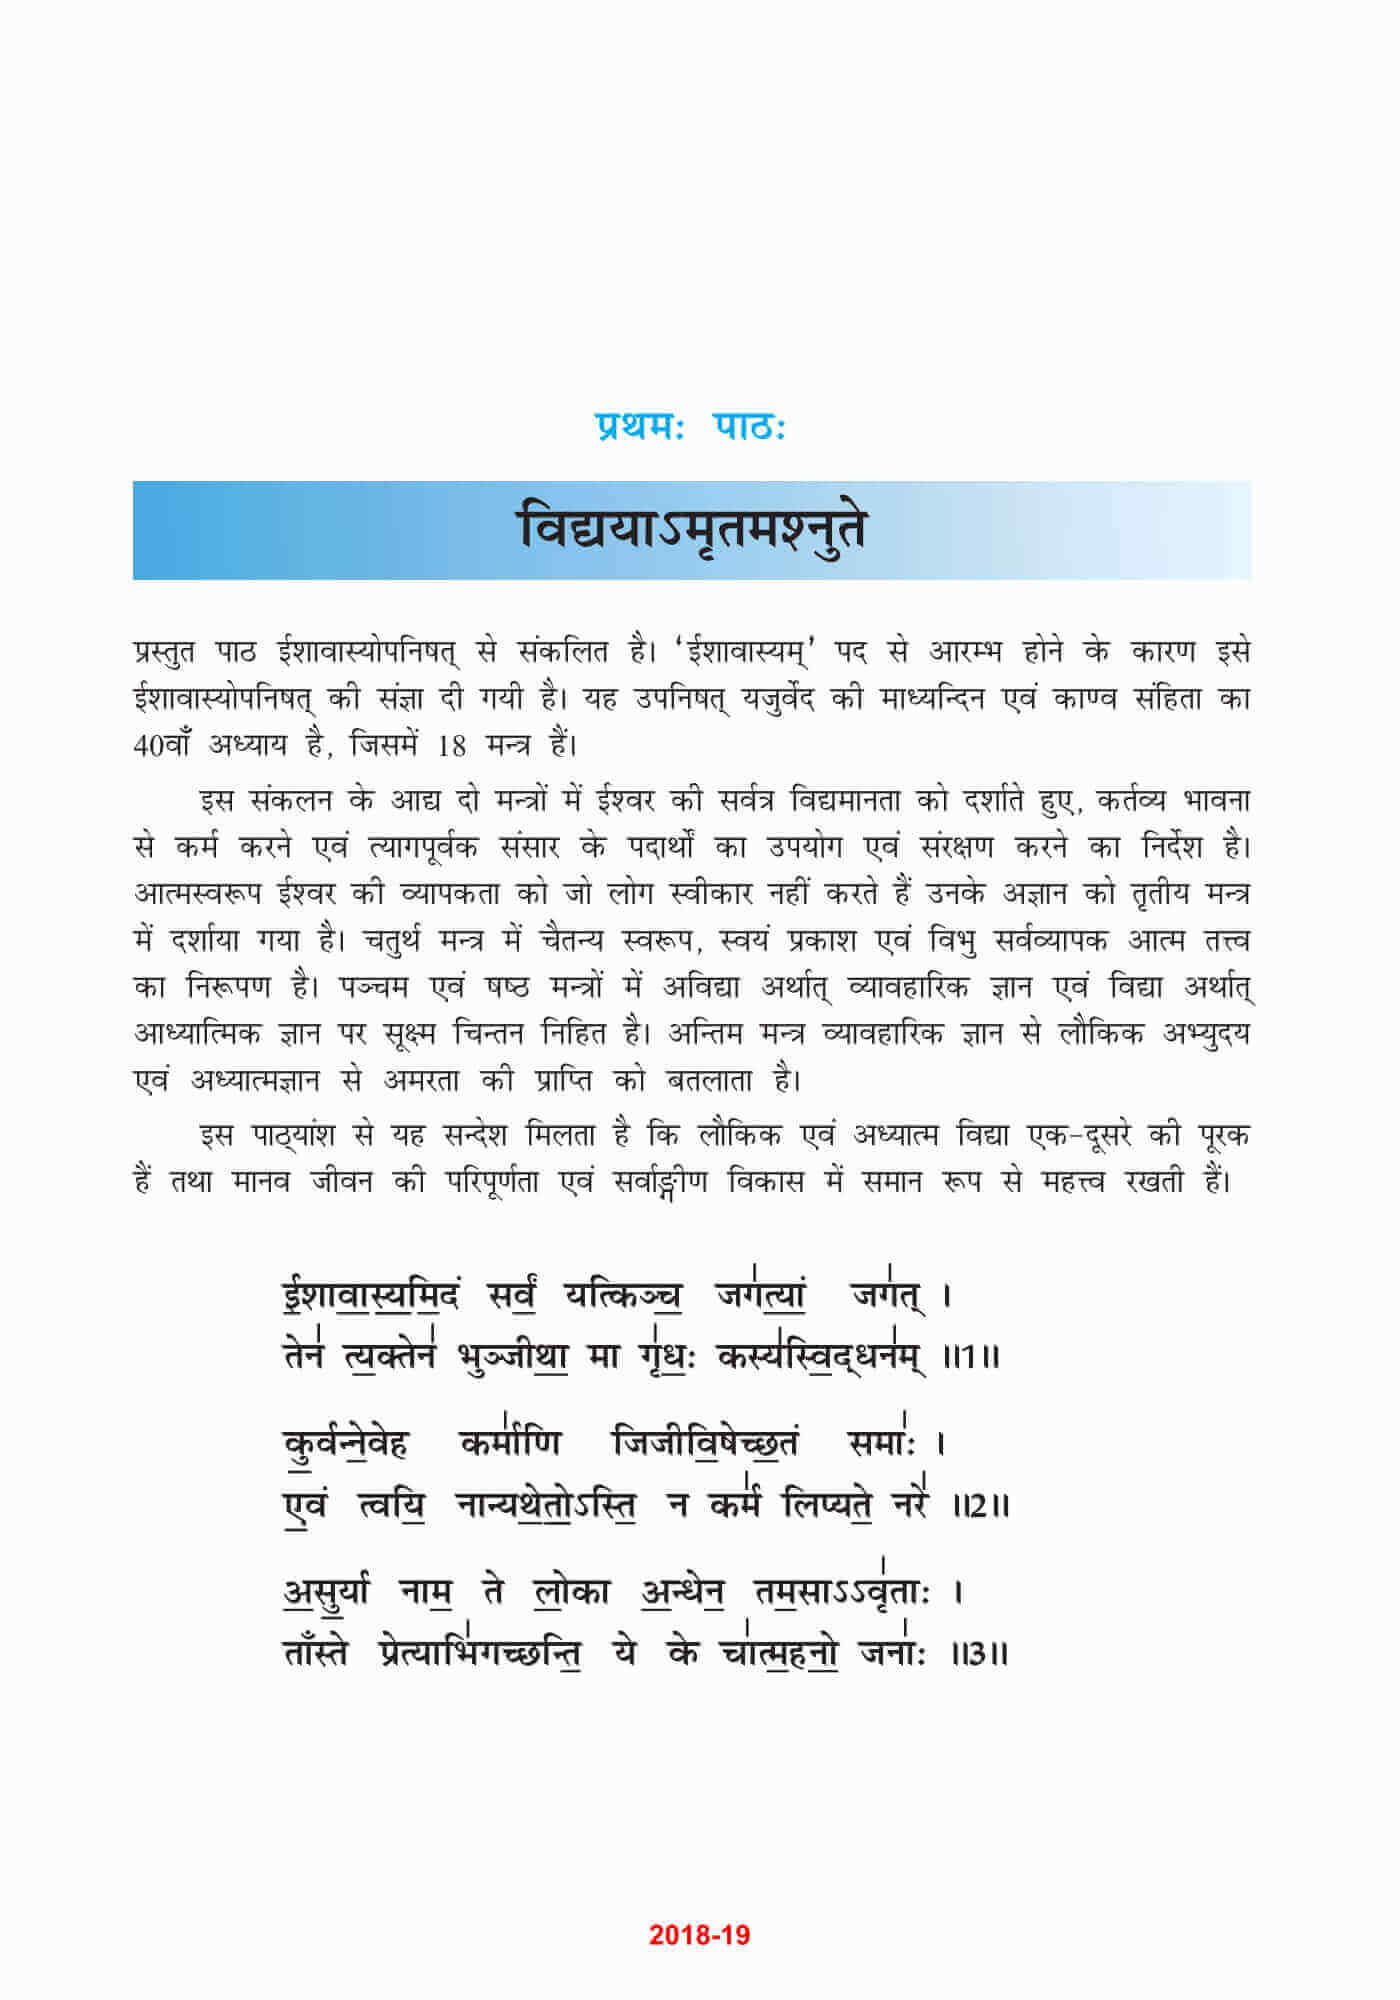 NCERT Solutions For Class 12 Sanskrit Shaswati Chapter 1